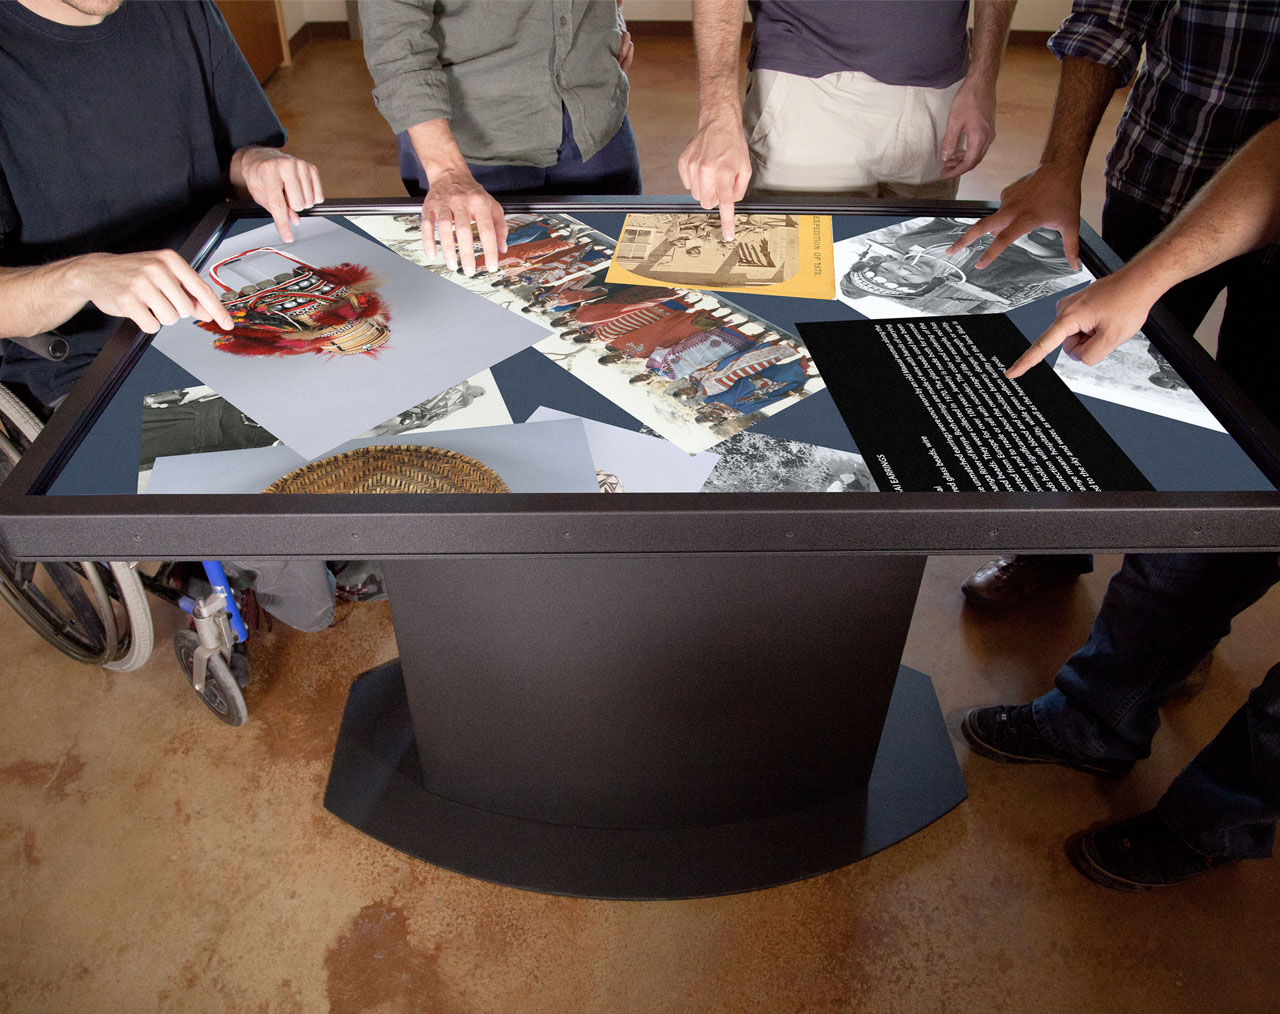 Image for the post: 'New Improved Specs + Options for the Pro Multitouch Table'